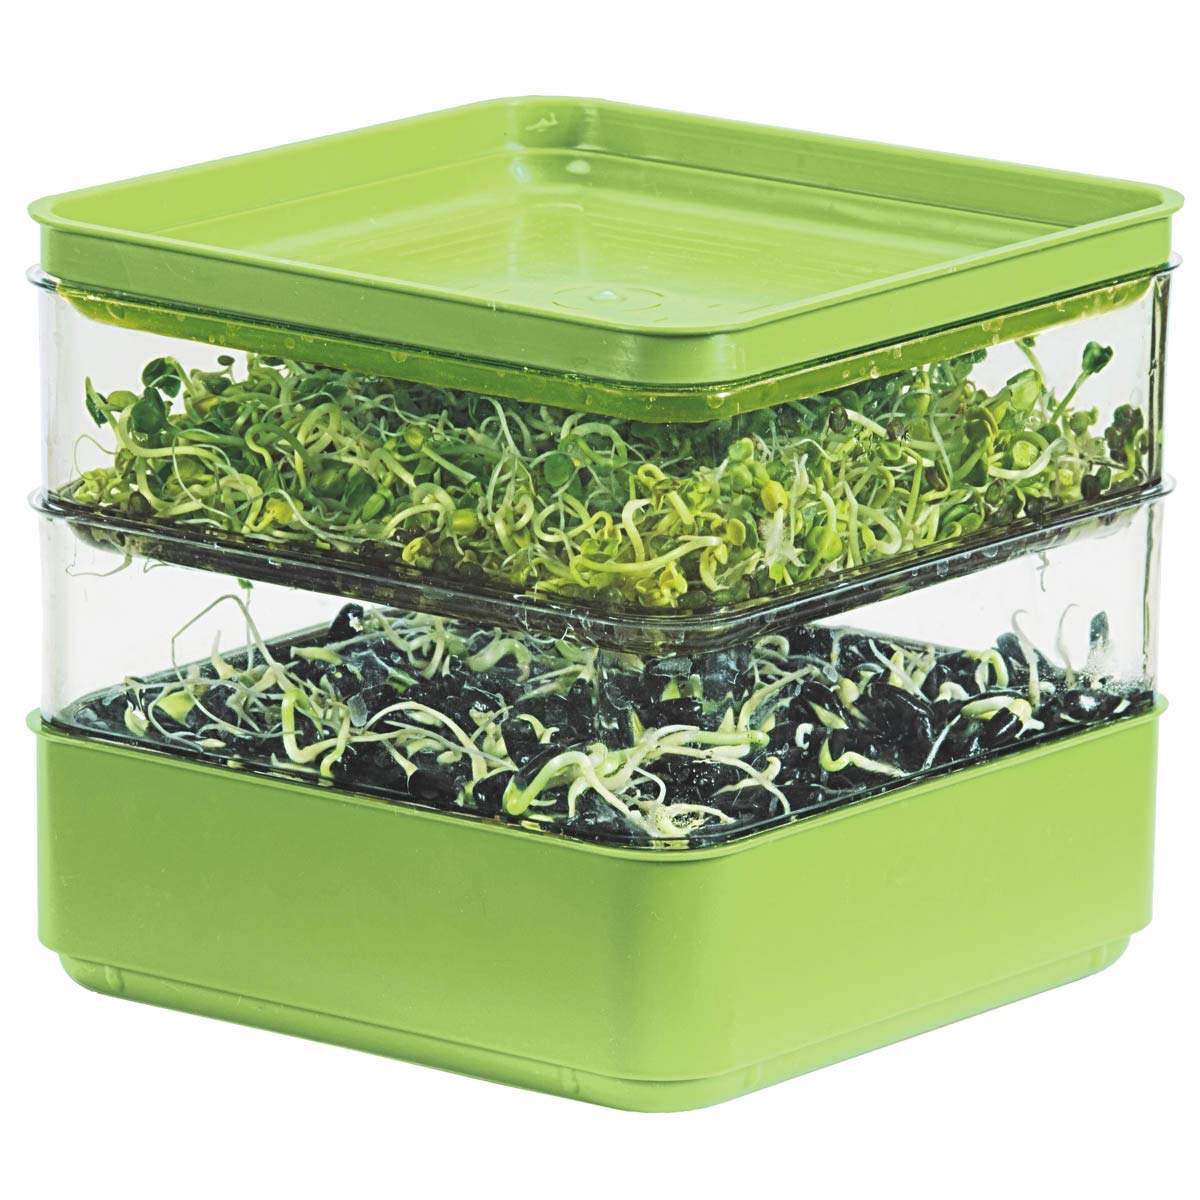 Gardens Alive! Two-Tiered Seed Sprouter - Ideal for indoor sprout growing for a healthy snack or addition to any meal! by GARDENS ALIVE!